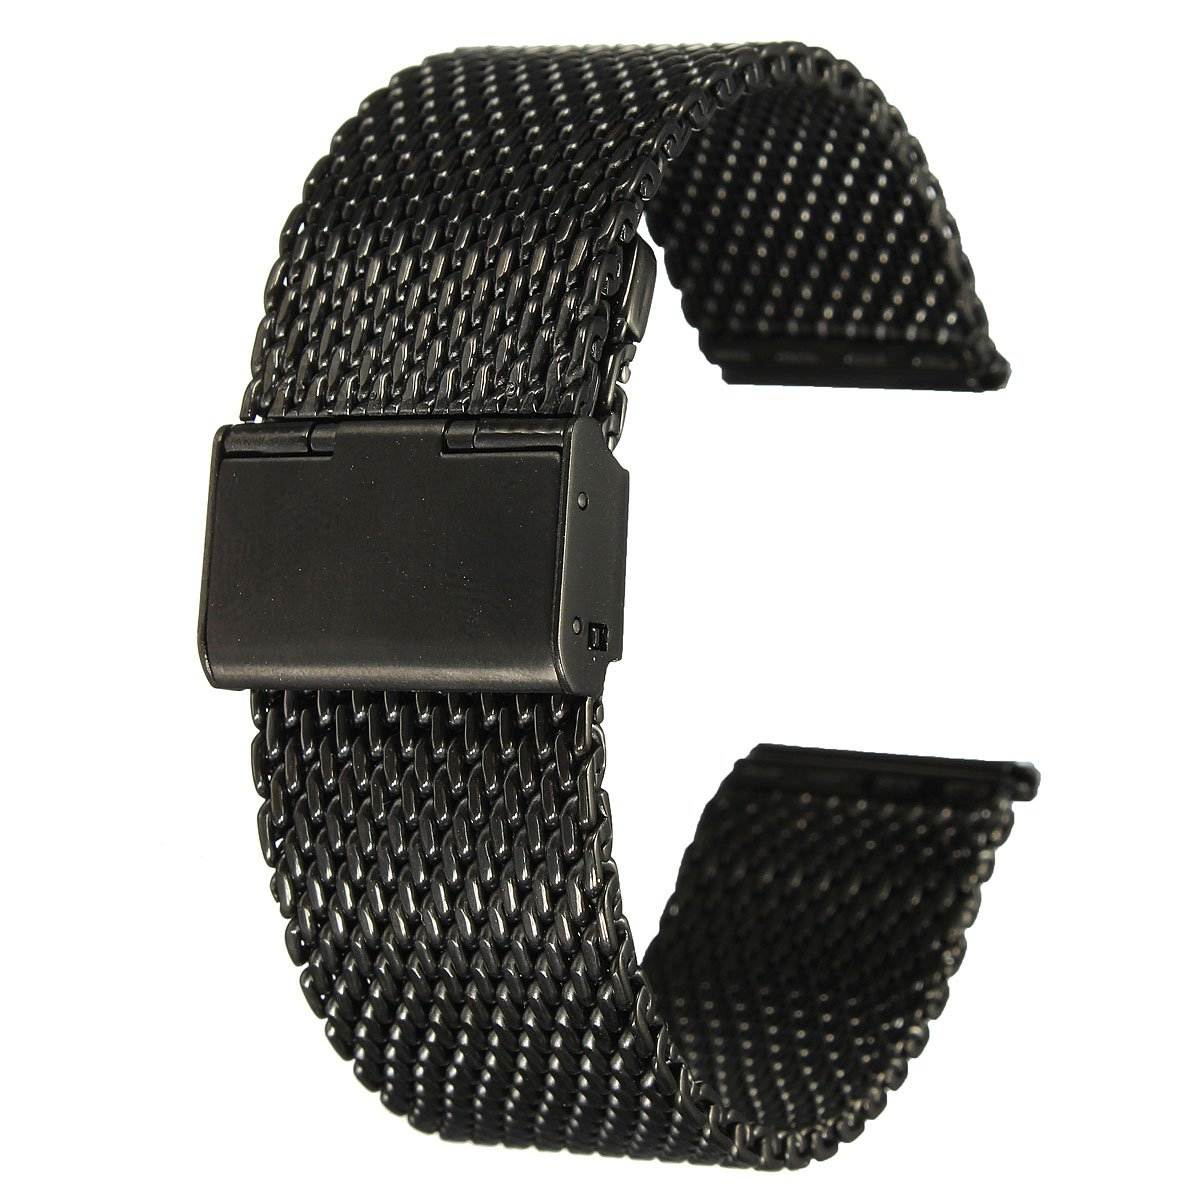 Practical 18mm Unisex Stainless Steel Chainmail Watch Strap Band New Year Gift black